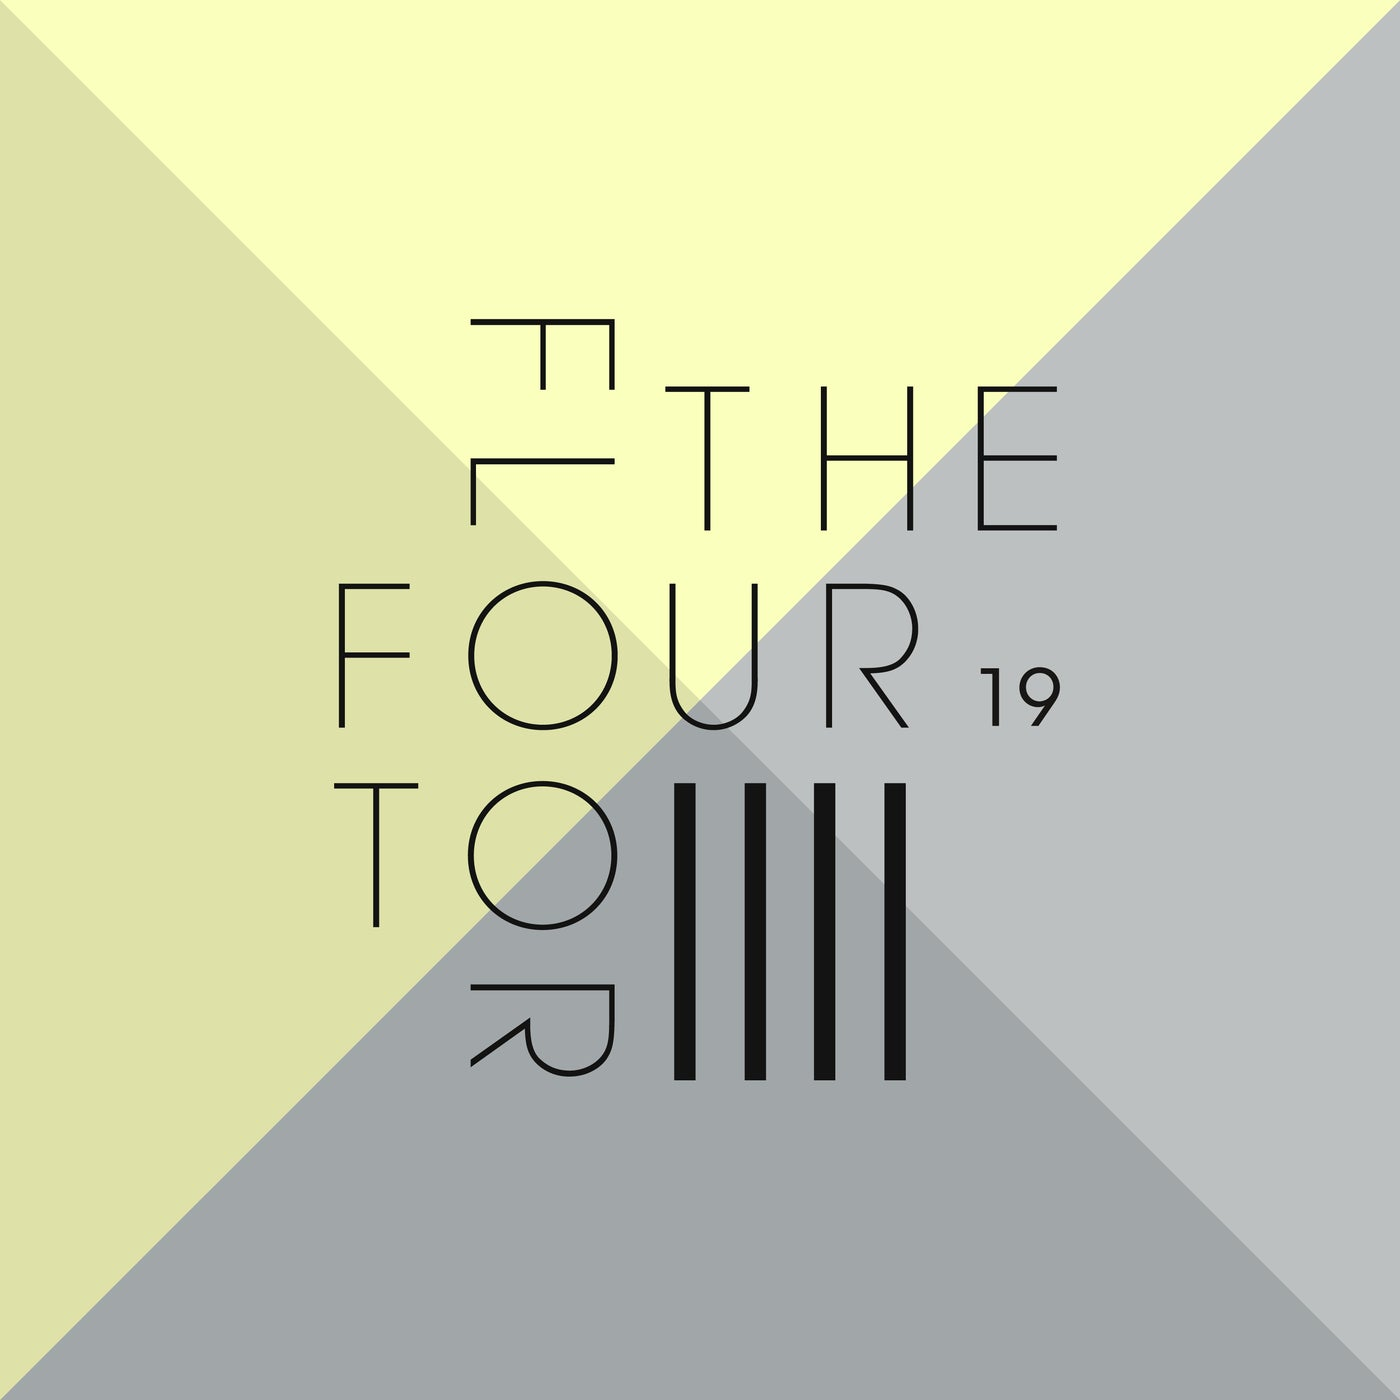 Download Four To The Floor 19 on Electrobuzz